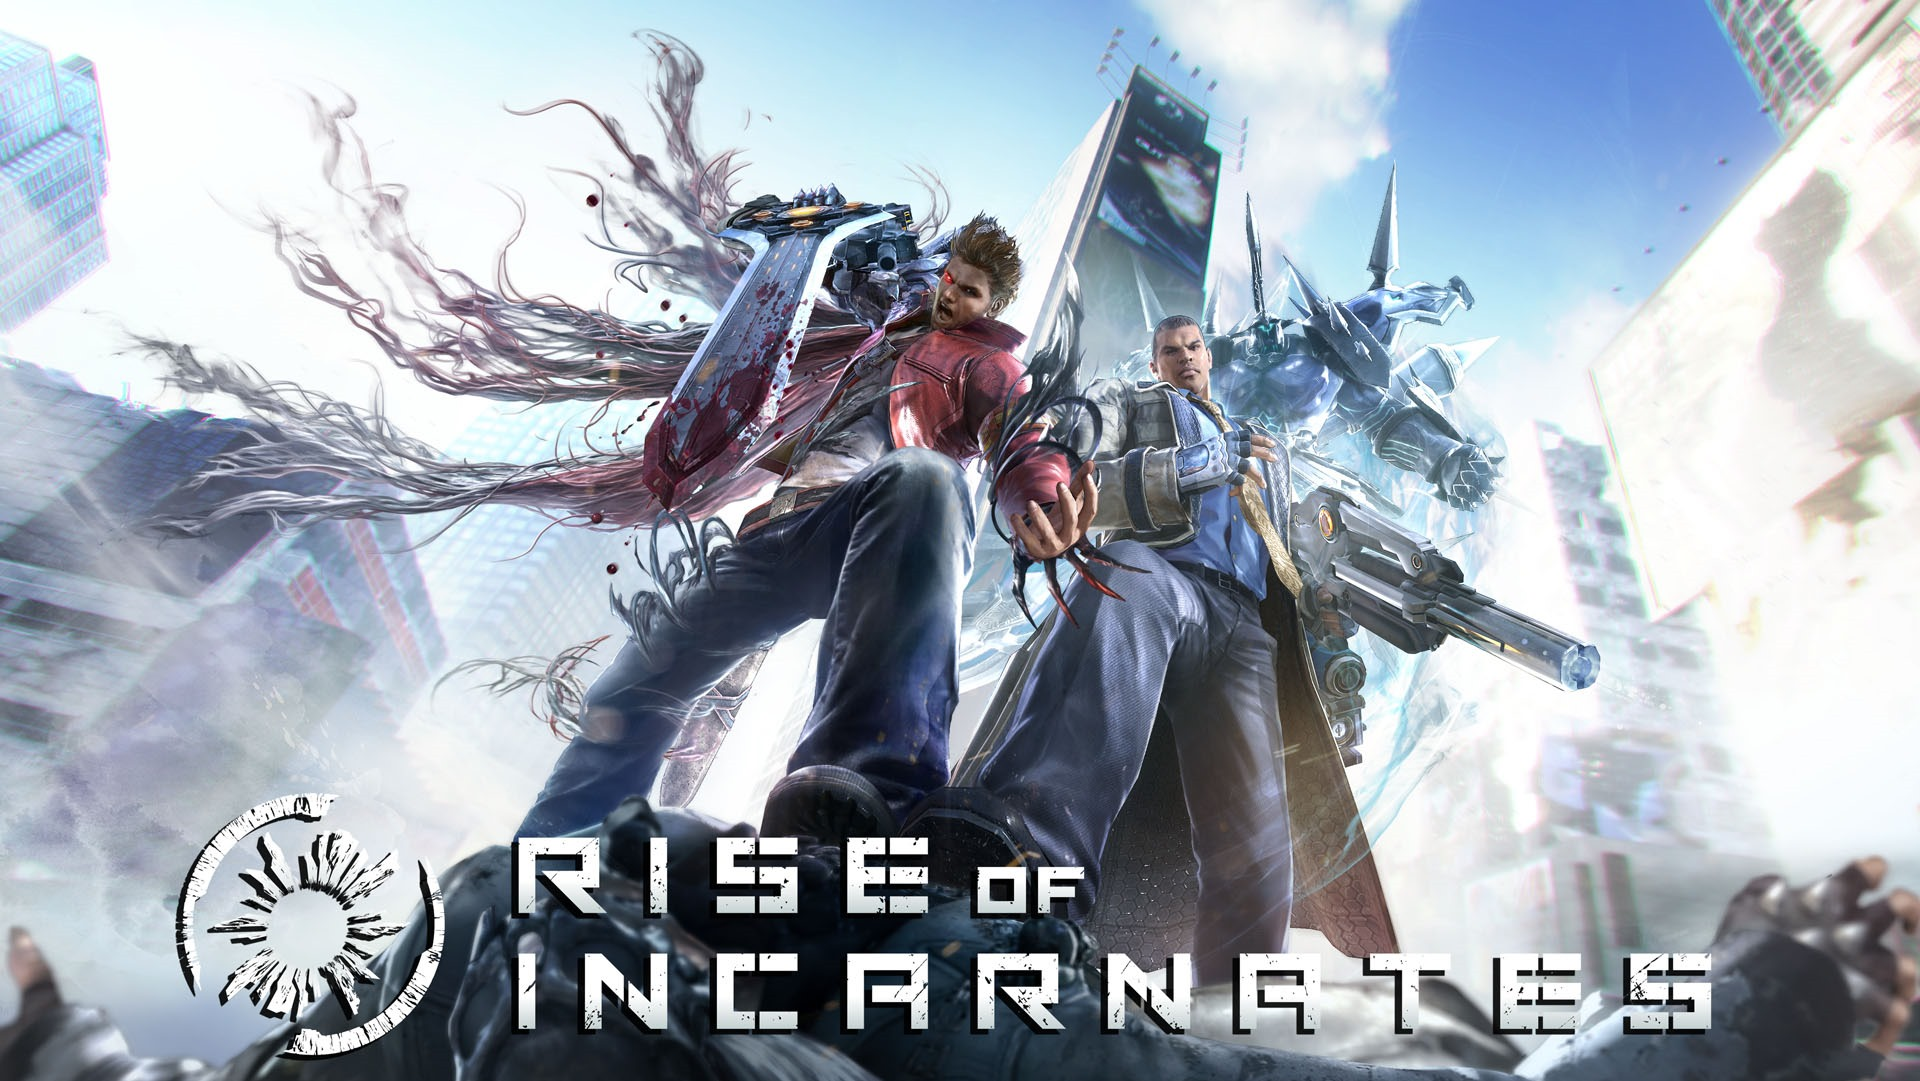 6souls games 2015 until december closure this rise please game will last notice very enjoy continue october service your incarnates times dates provide july above given updates before ip applications have page account changed further vary time depending over information bamco operating prior without there should launched remaining region offer